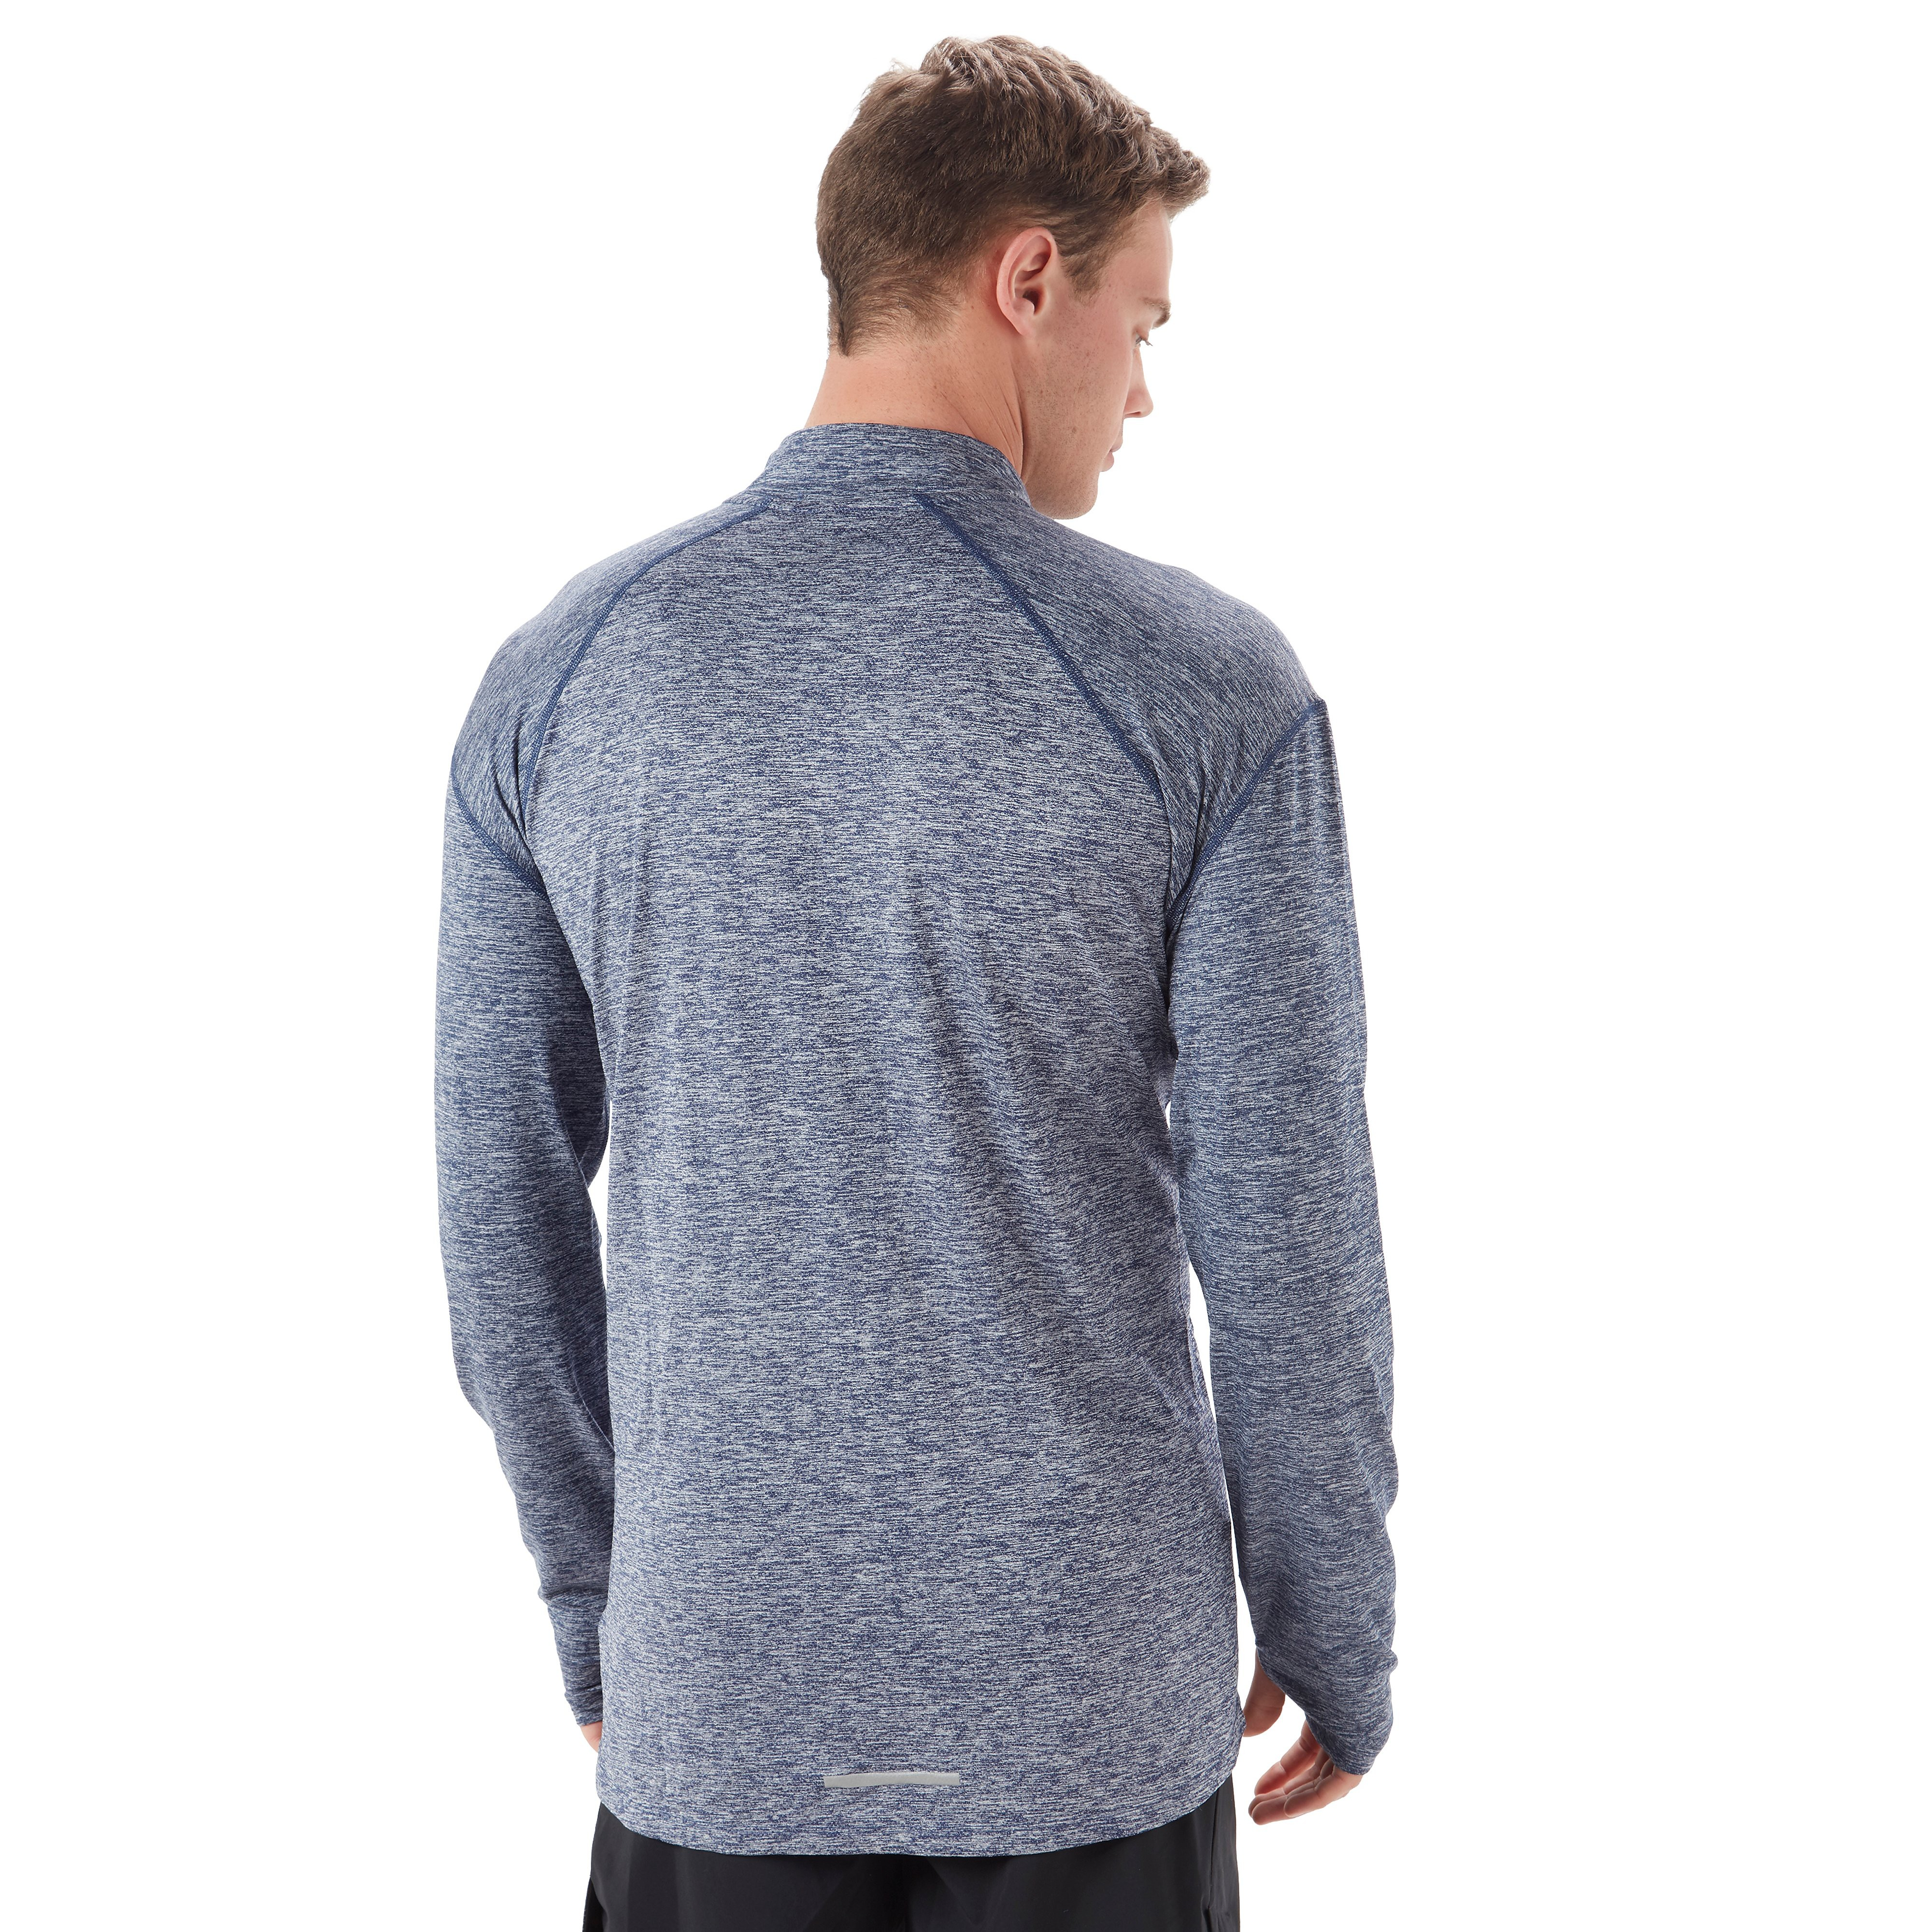 Nike Dry Element 1/2 Zip Men's Running Top